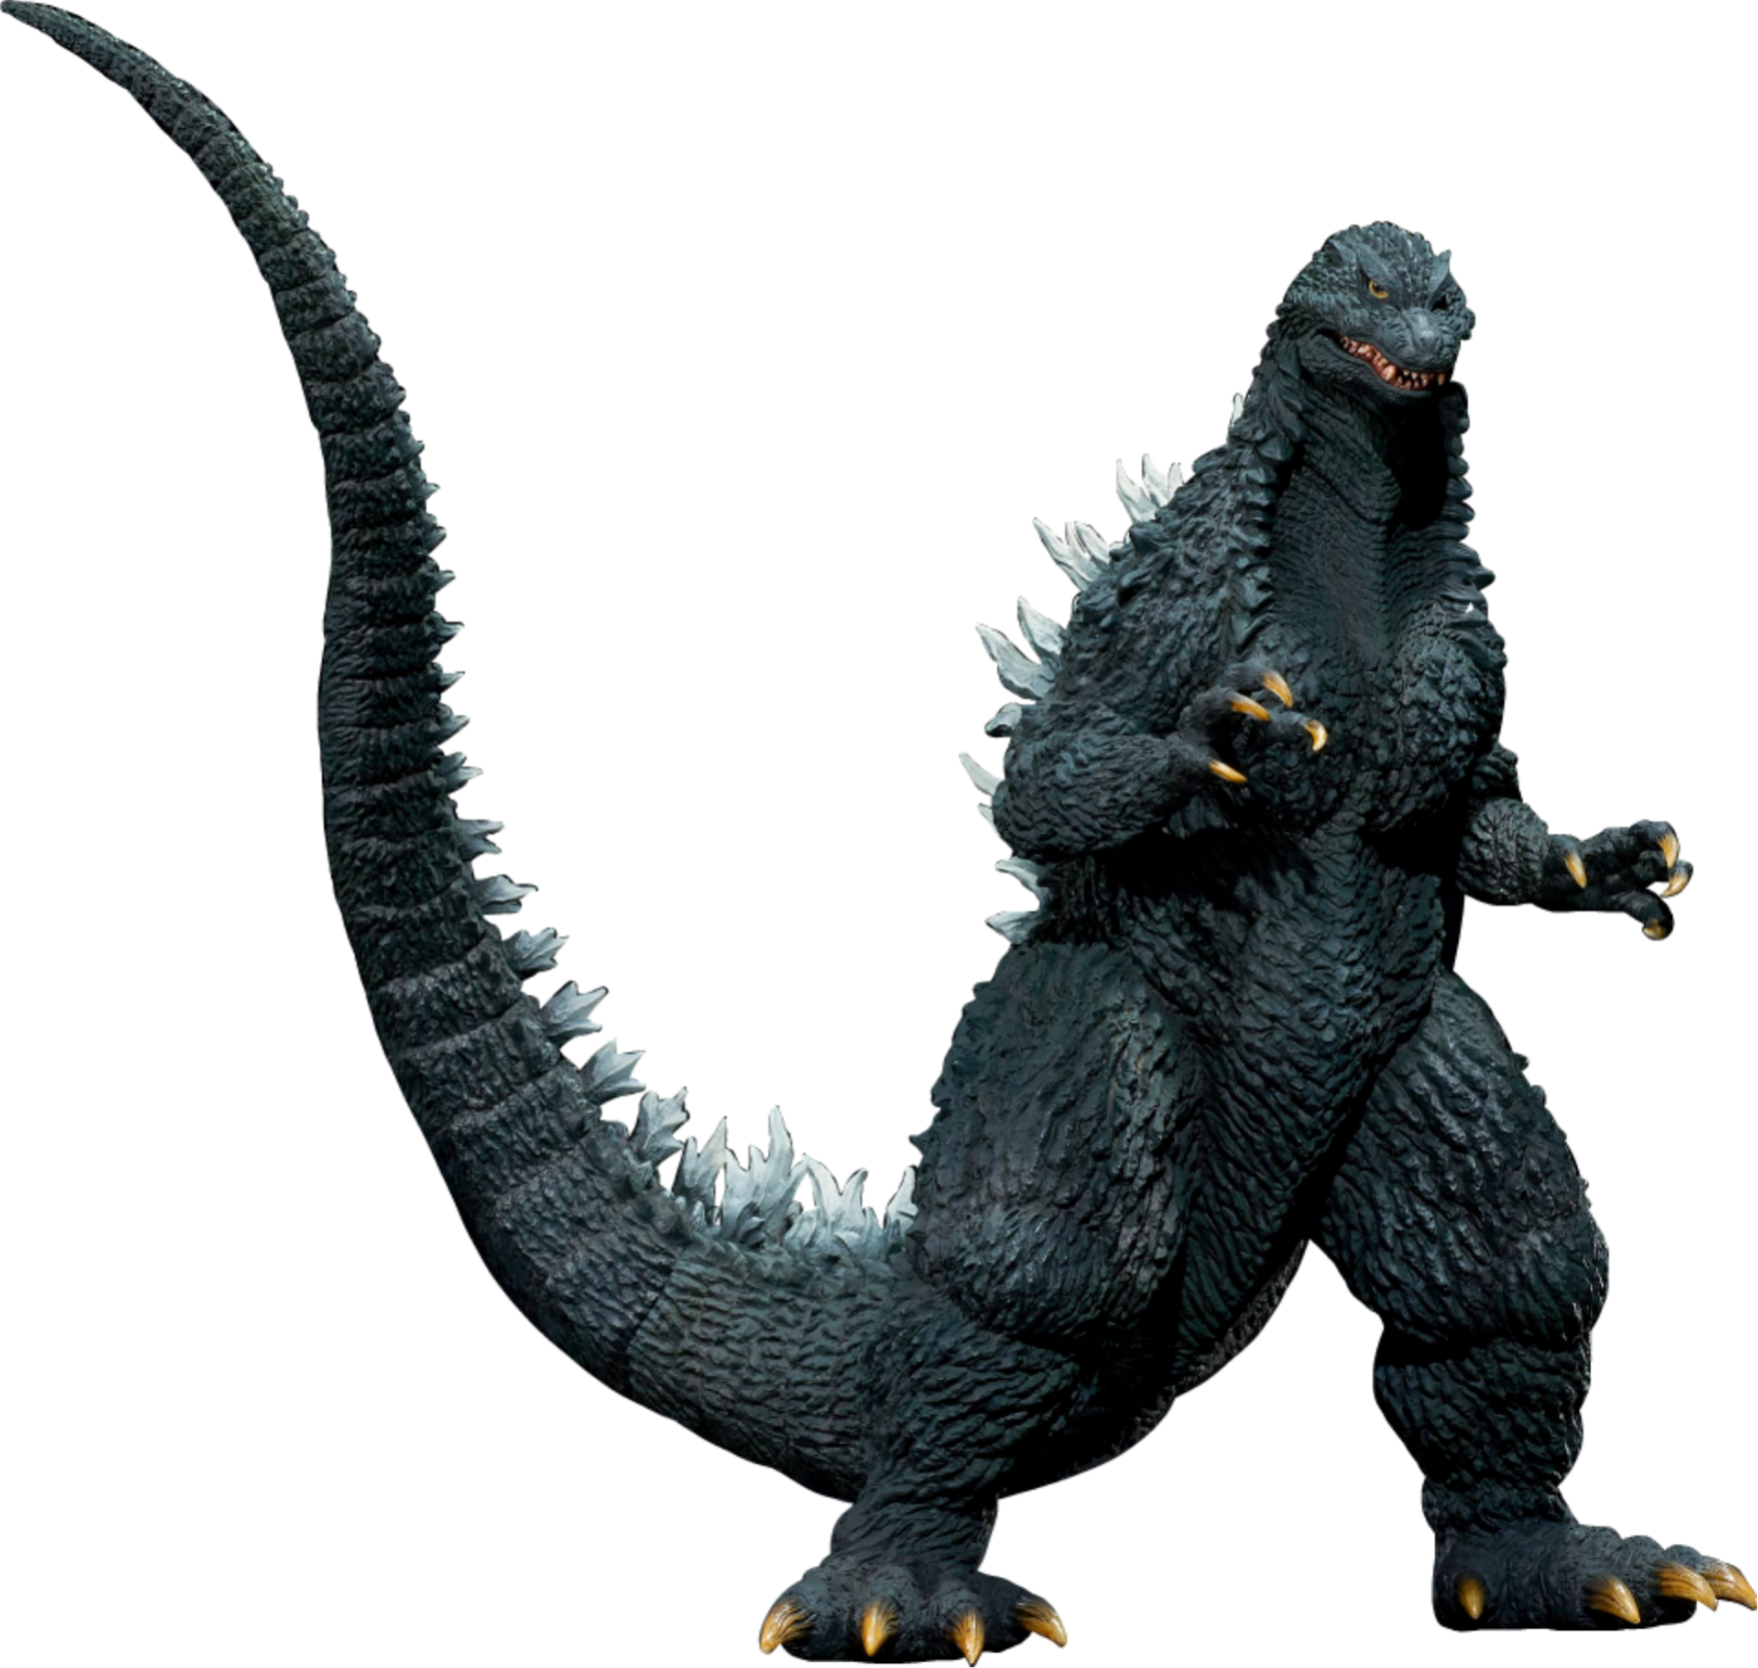 png for my favorite godzilla design, kiryu.